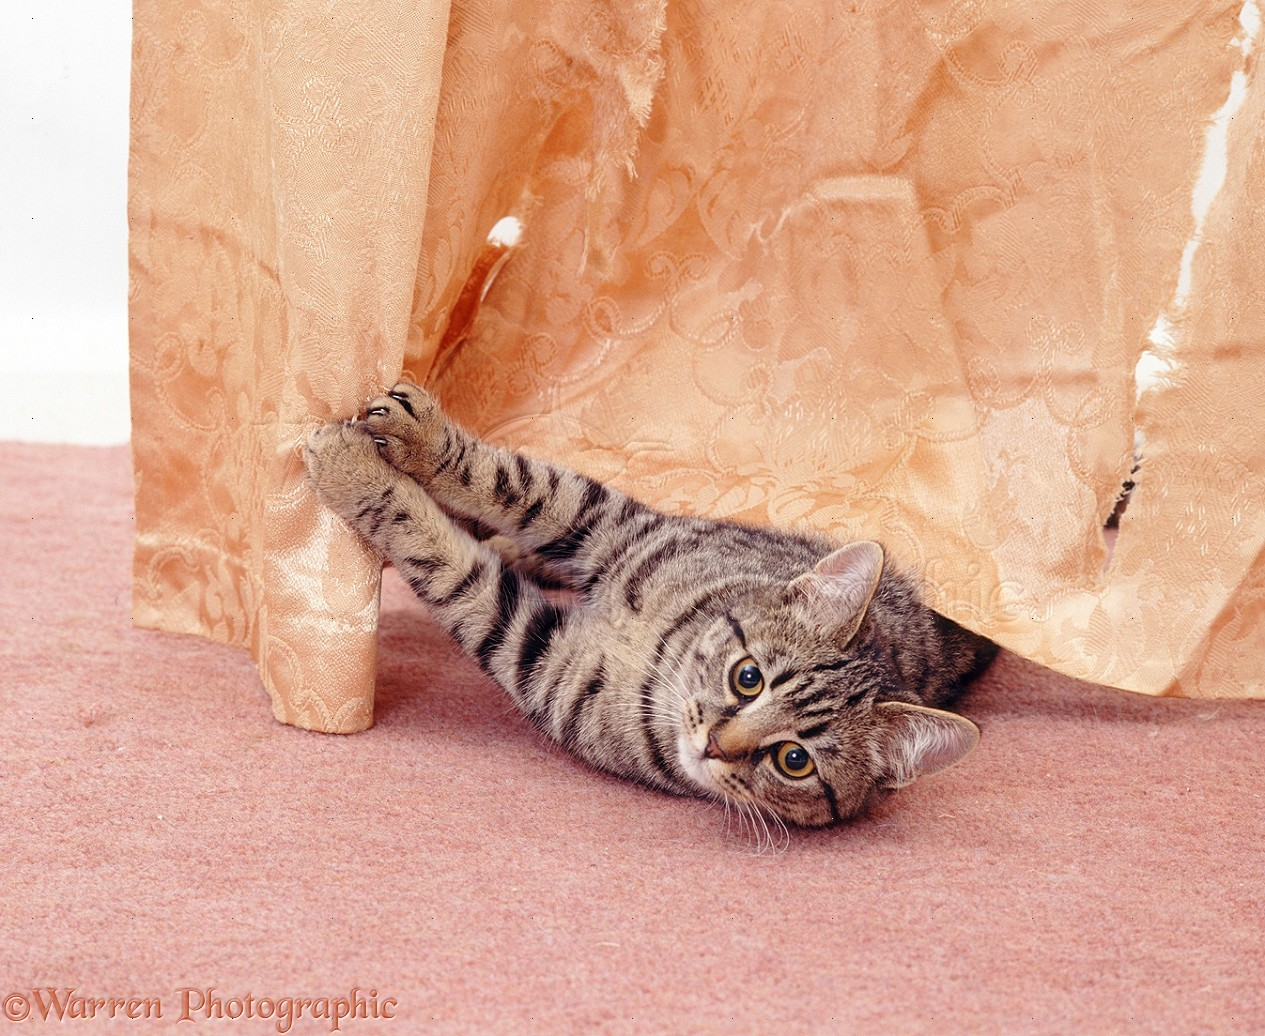 WP18947 Tabby female cat Popocat scratching and shredding a curtain.